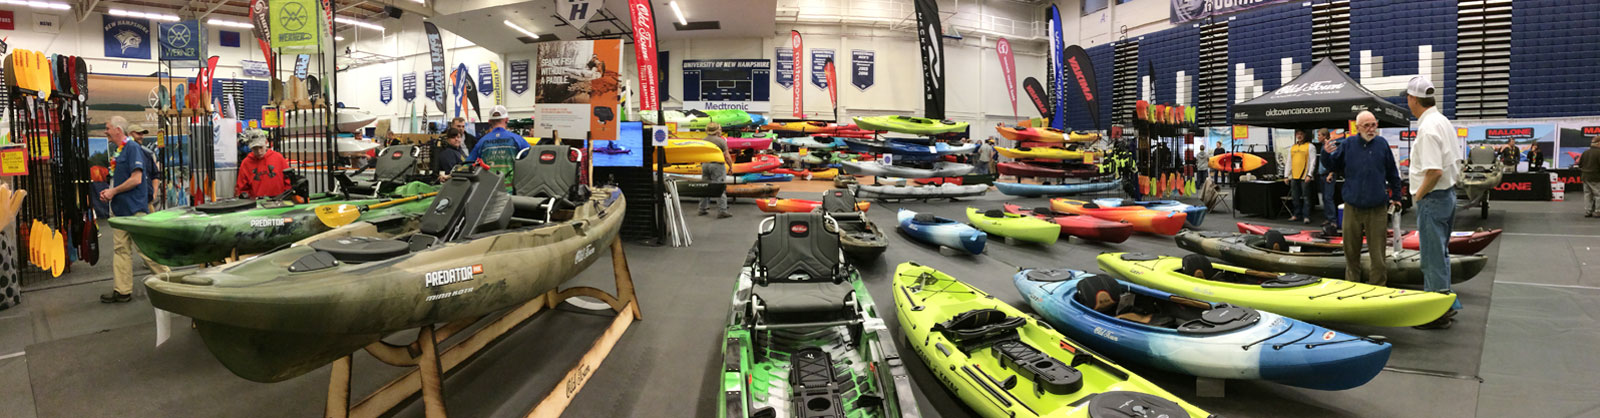 New England Paddlesports Show 2019   Kittery Trading Post